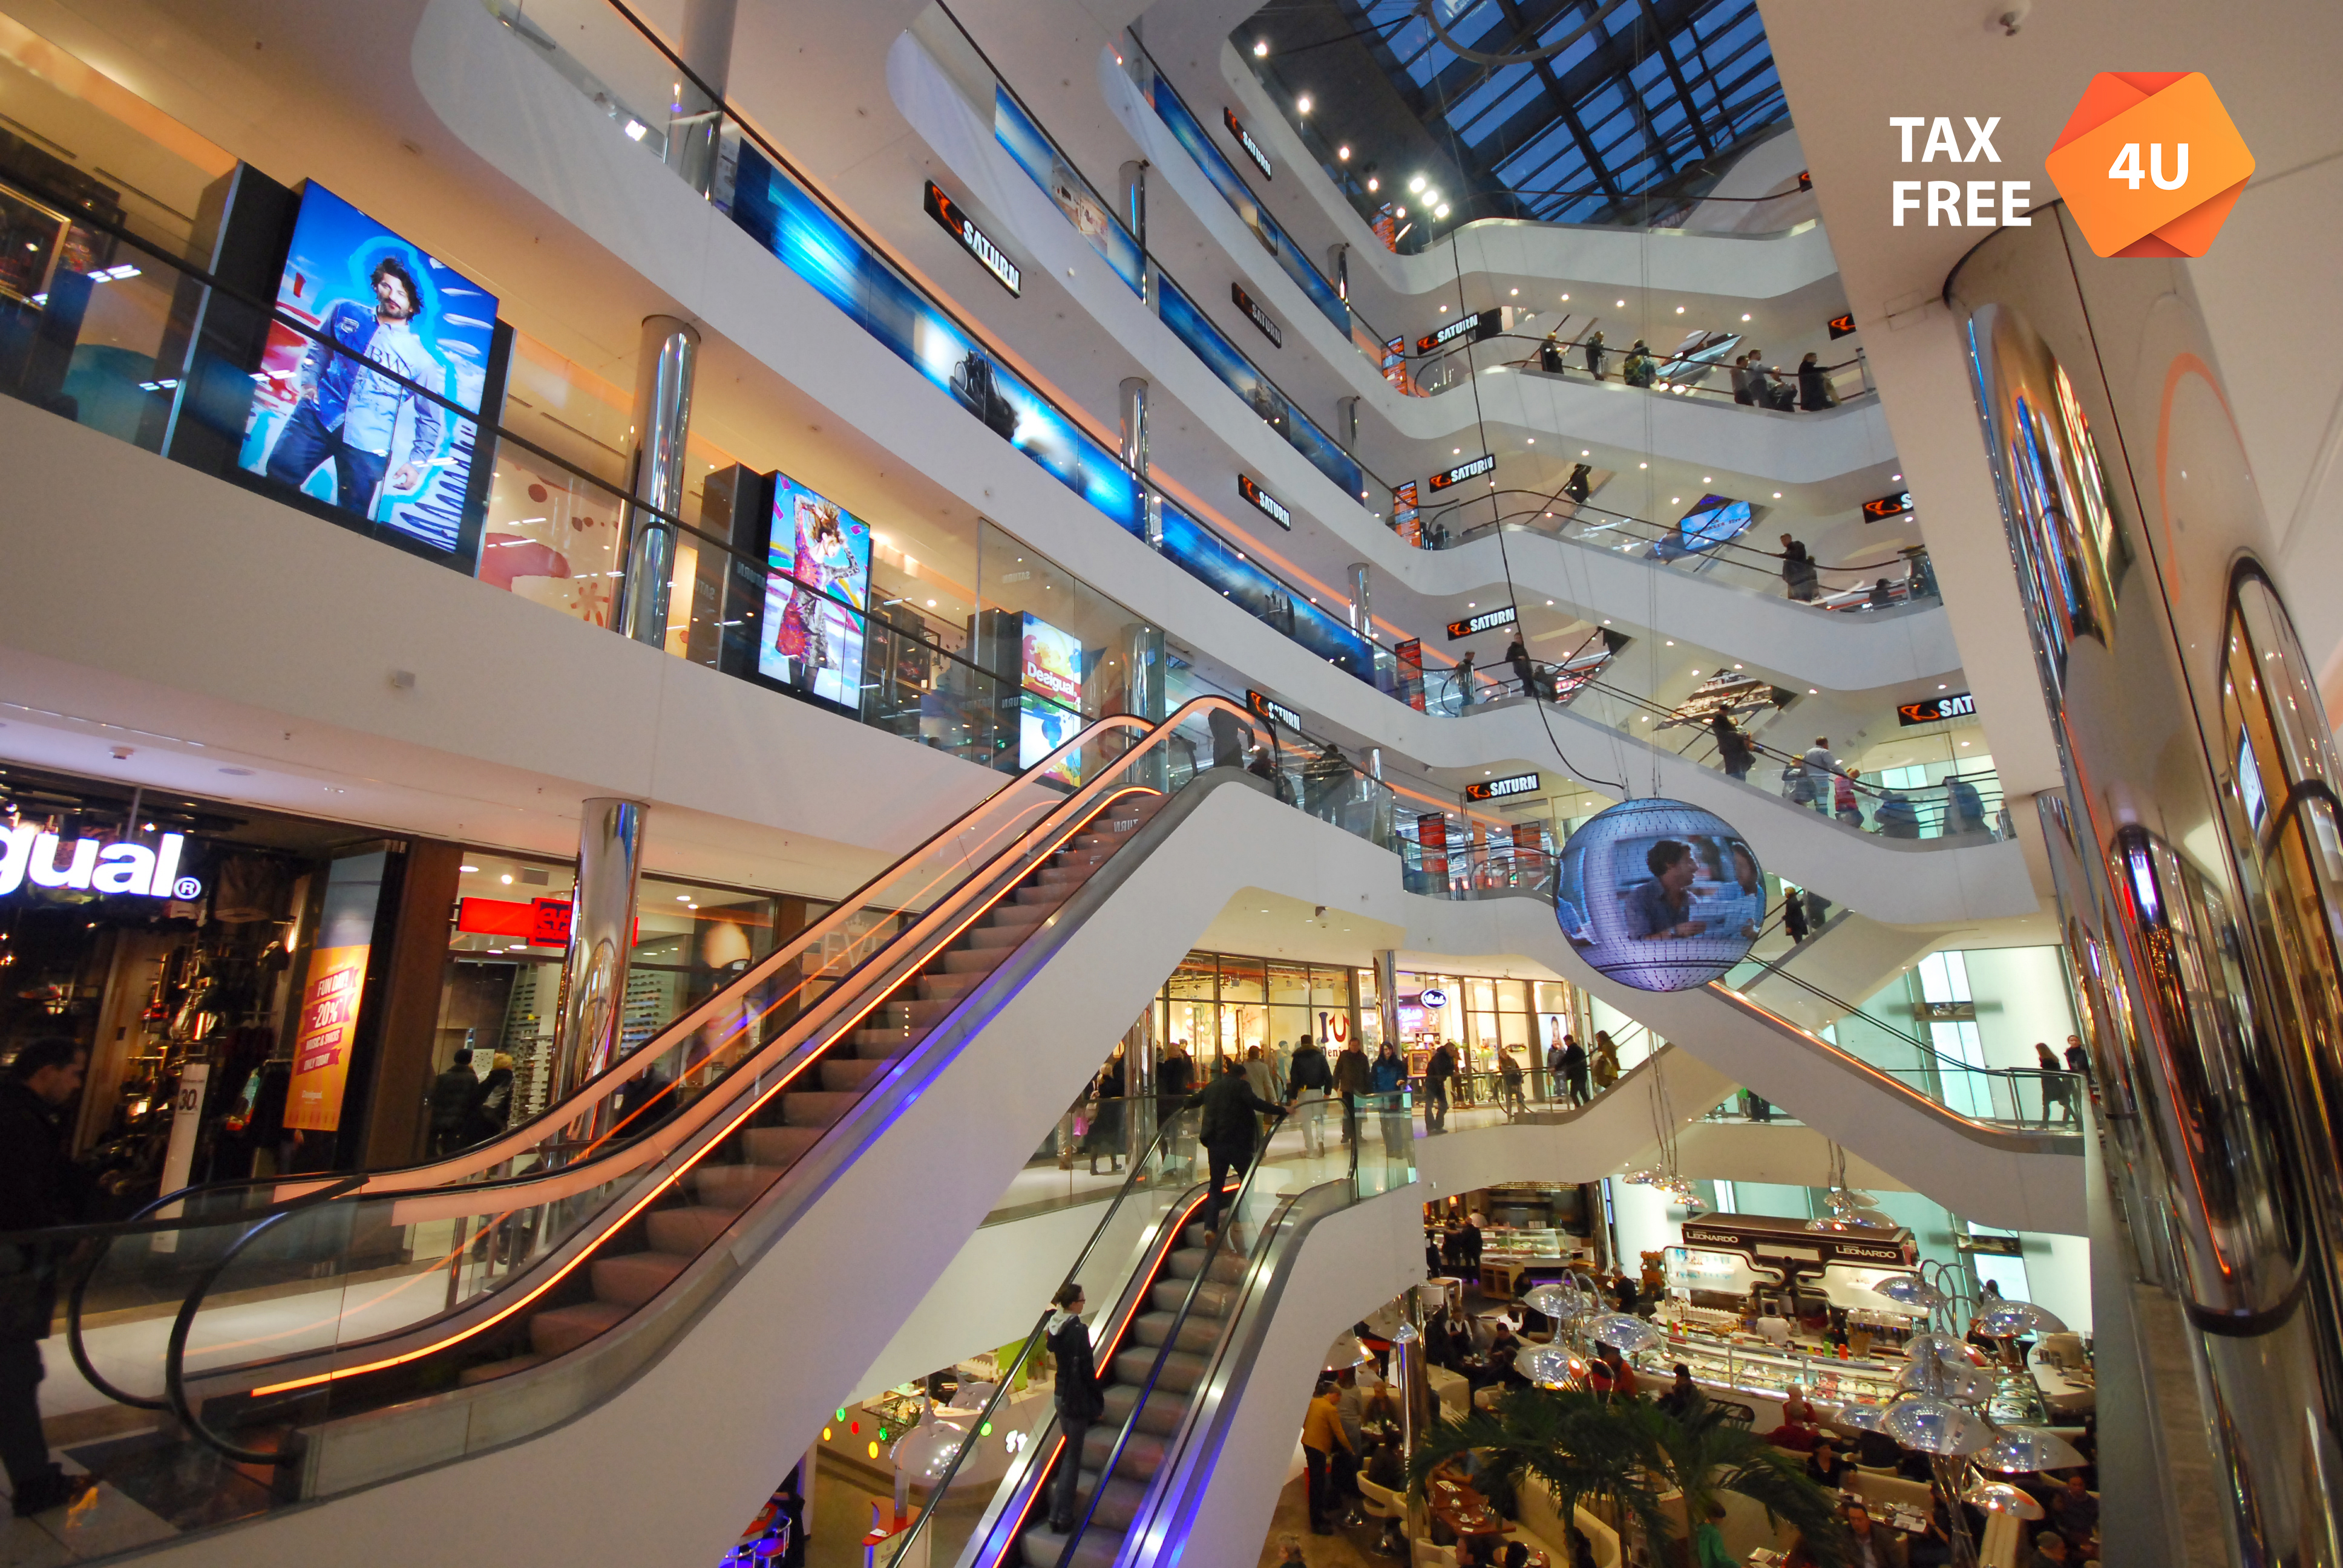 DUSSELDORF, GERMANY - OCTOBER 27: Interior of a shopping Mall October 27, 2012 in Dusseldorf, Germany. Interior of a shopping mall close to the Koningsallee